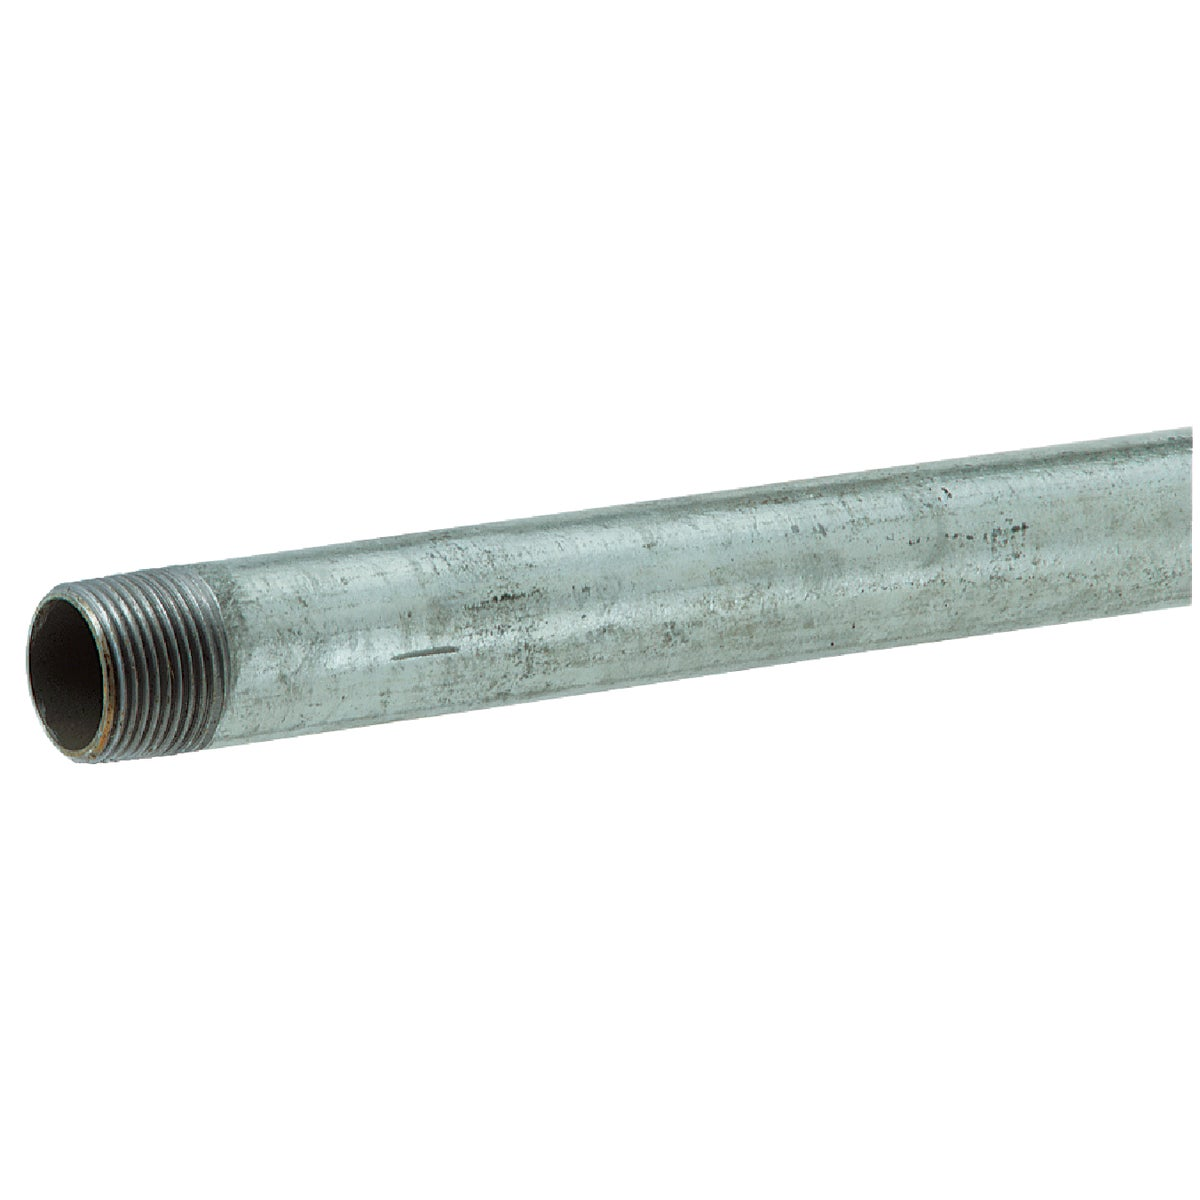 1-1/4X60GALV RDI-CT PIPE - 11/4X60 by Southland Pipe Nippl